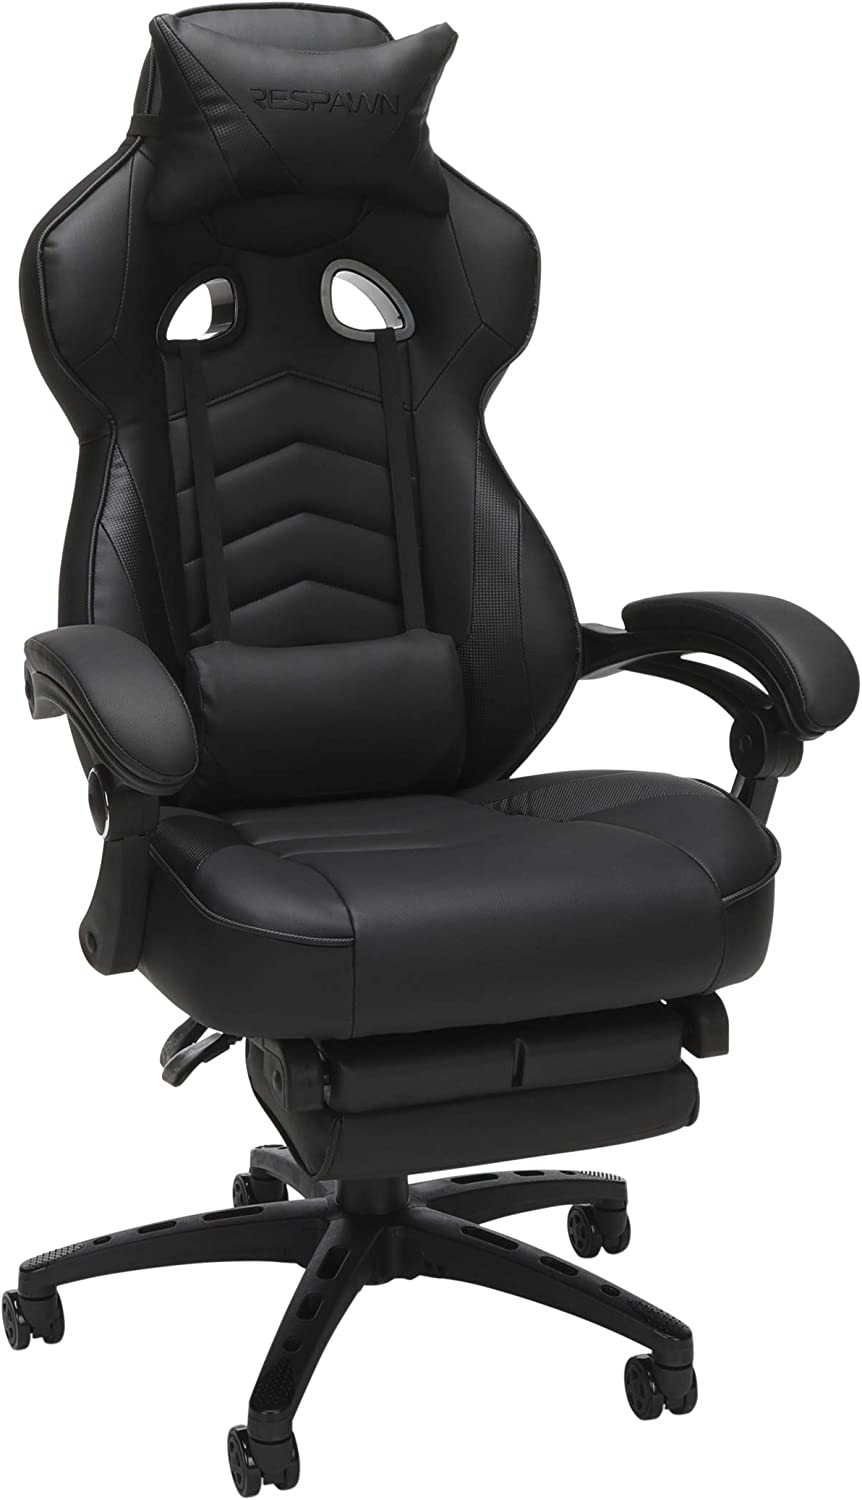 The Best Racing Style Gaming Chair